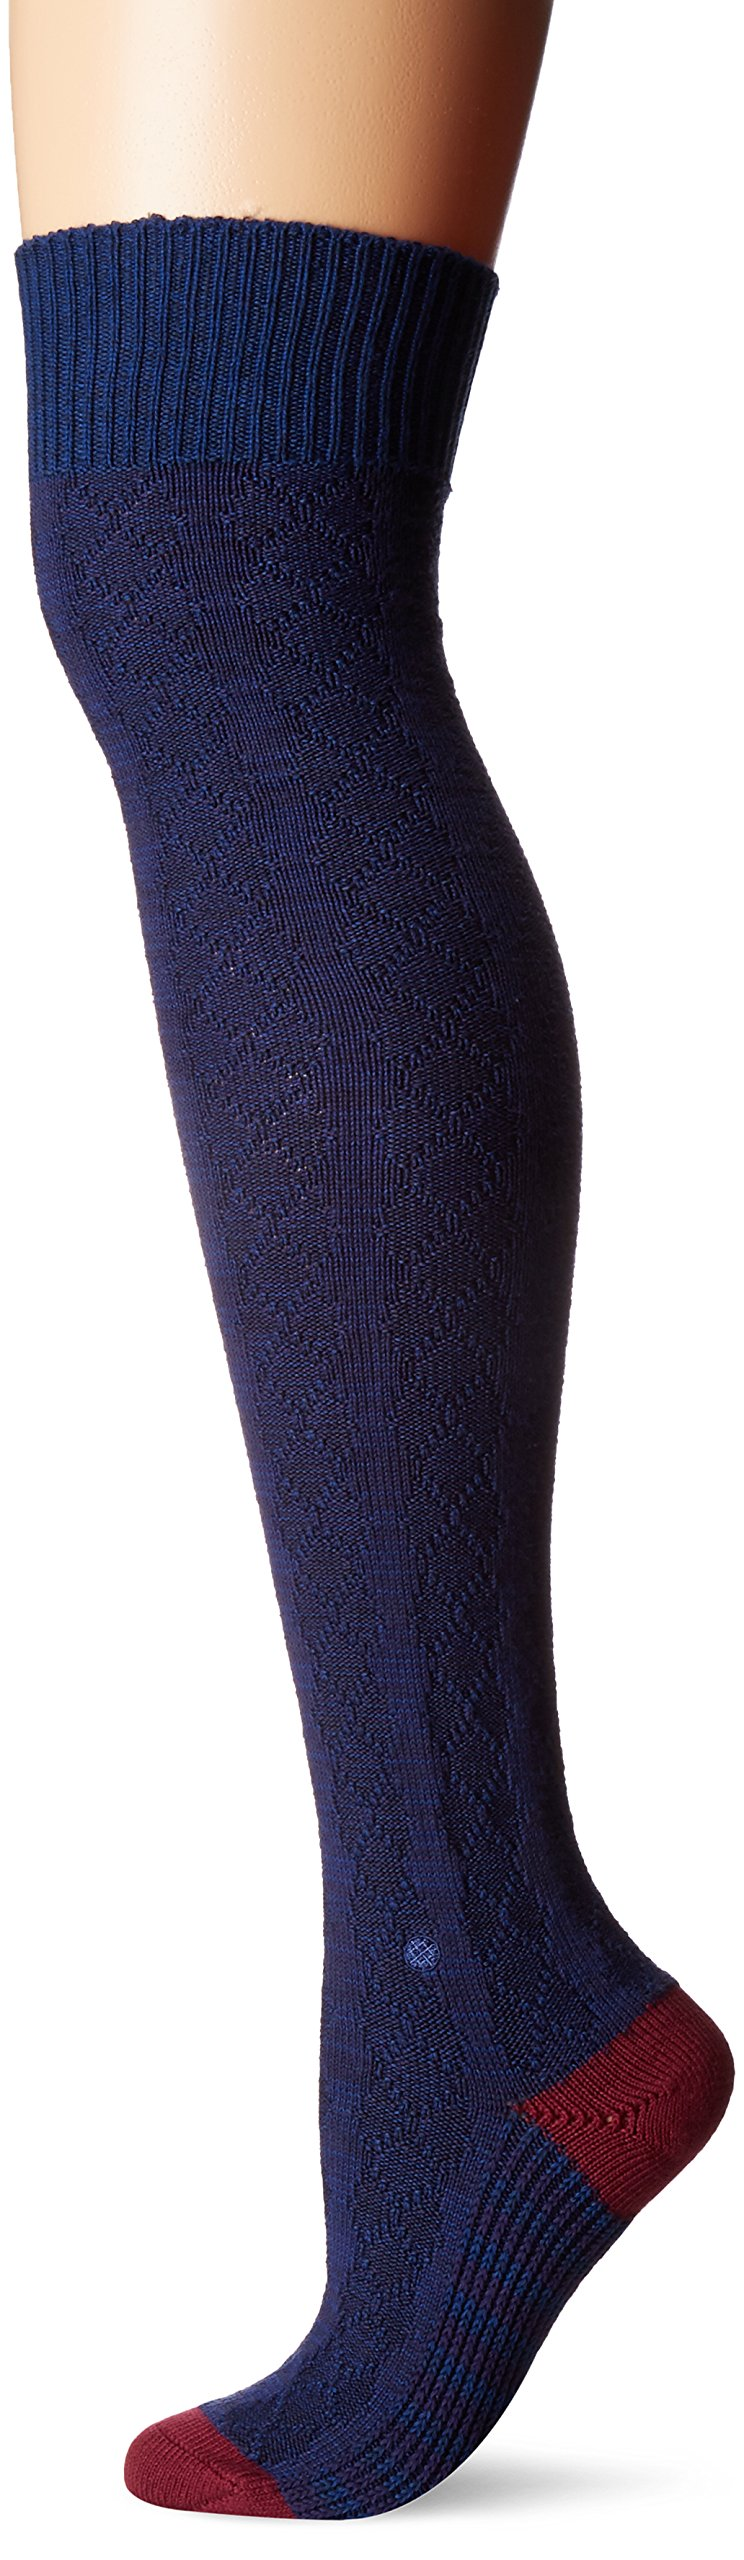 Stance Women's Fine Line Striped Arch Support Over the Knee Sock, Navy, One Size